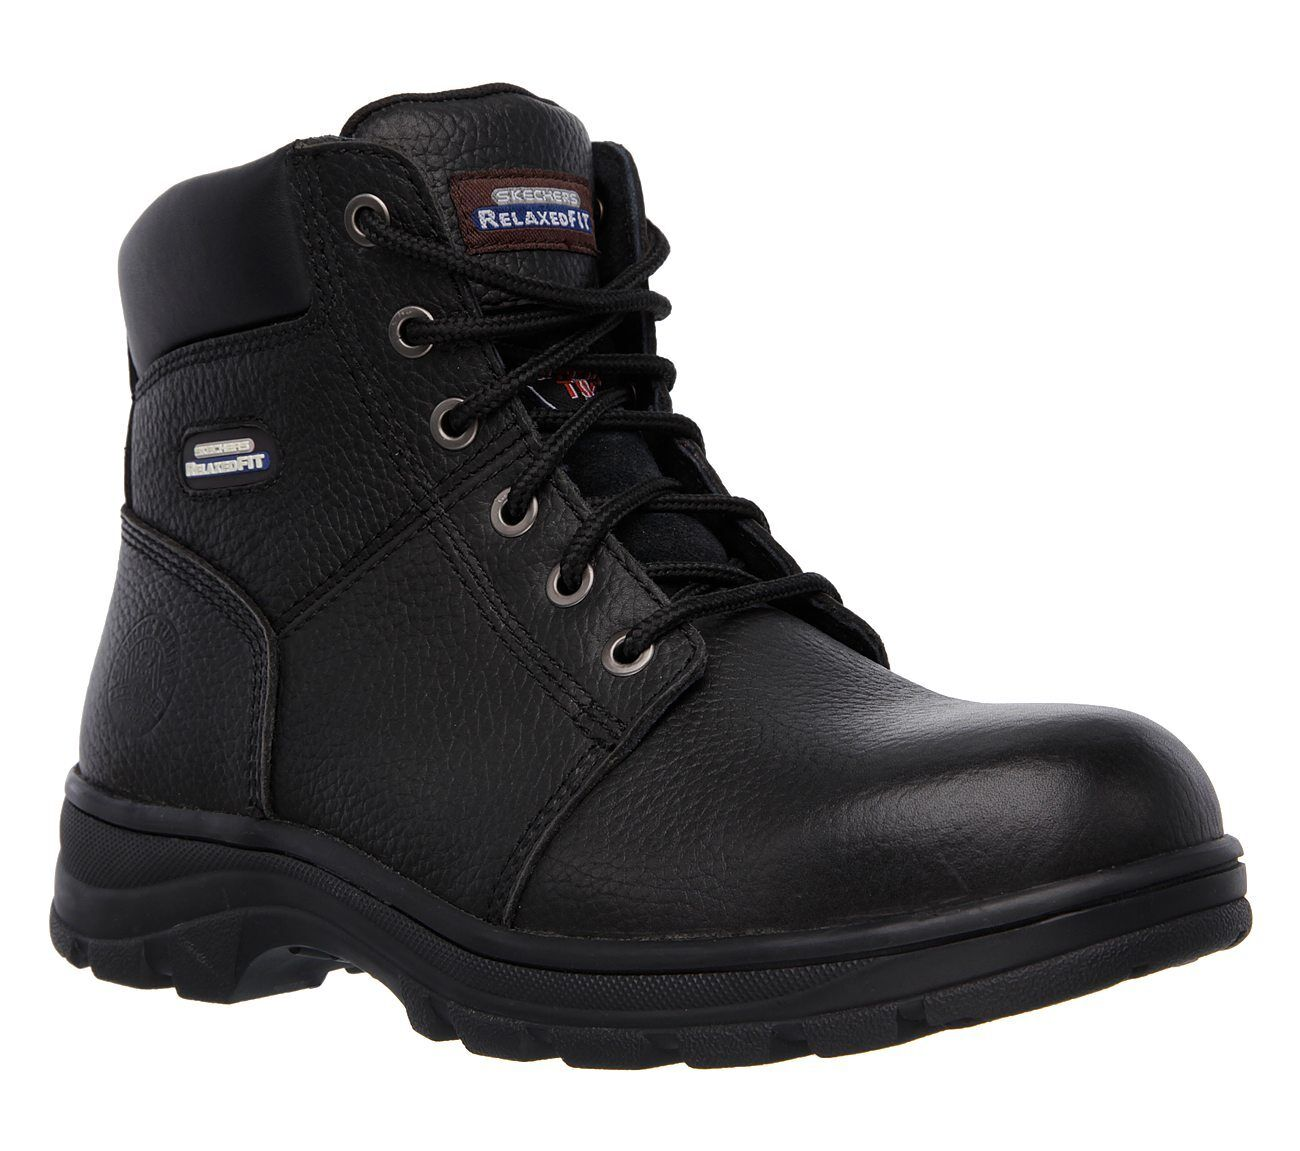 Workshire ST Safety Boots Mens Memory